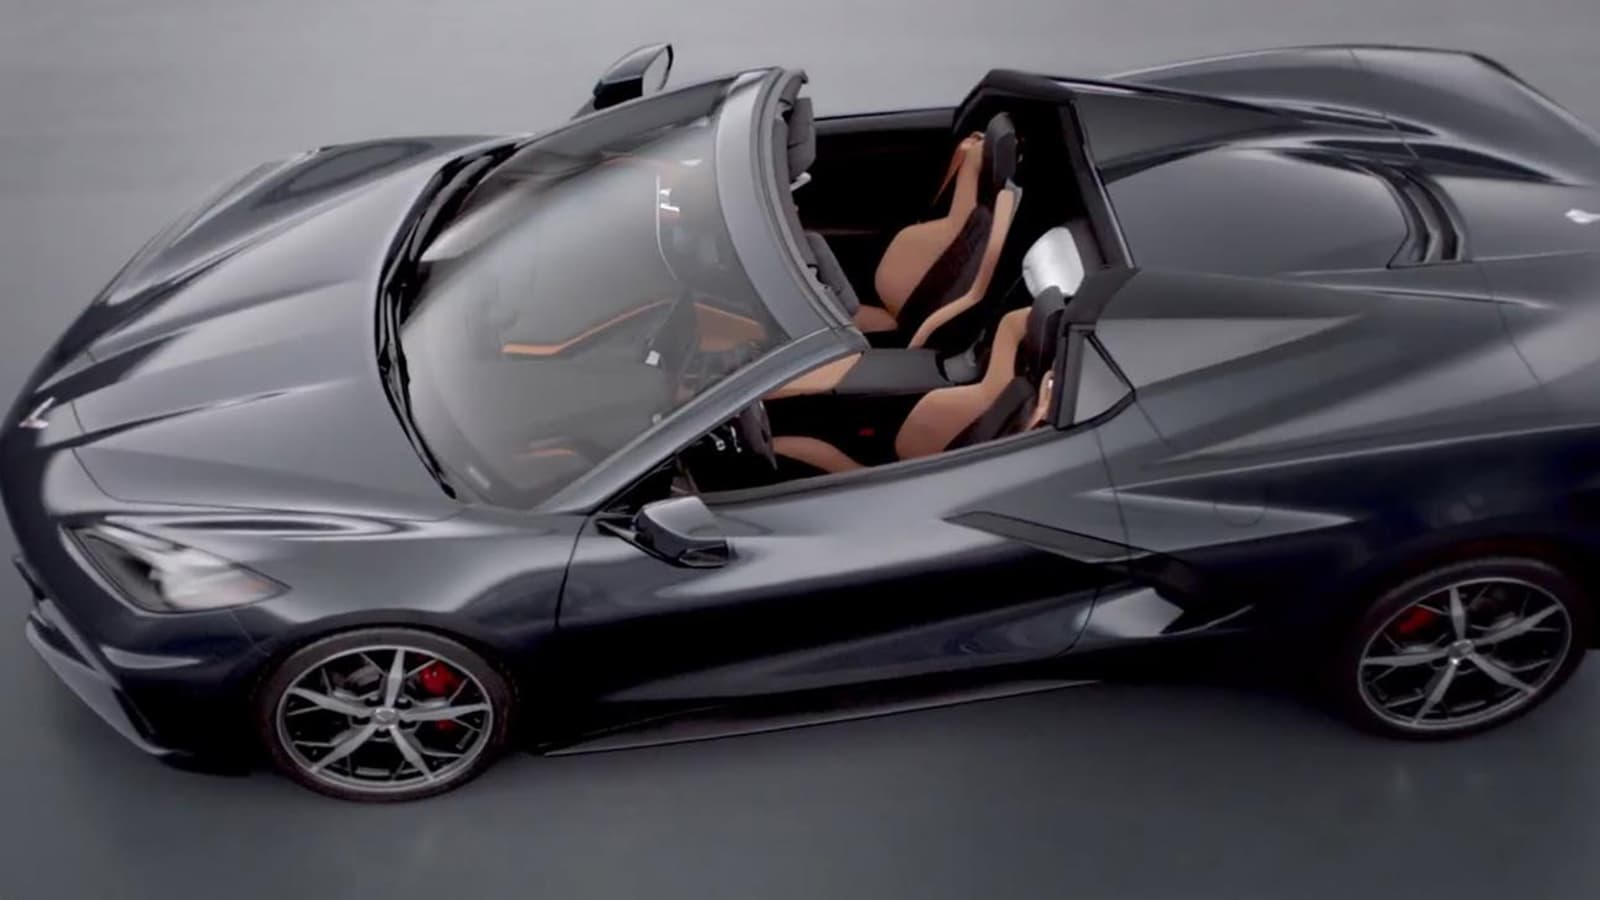 New Corvette Stingray >> Chevy Uncovers New Corvette Convertible And Race Version